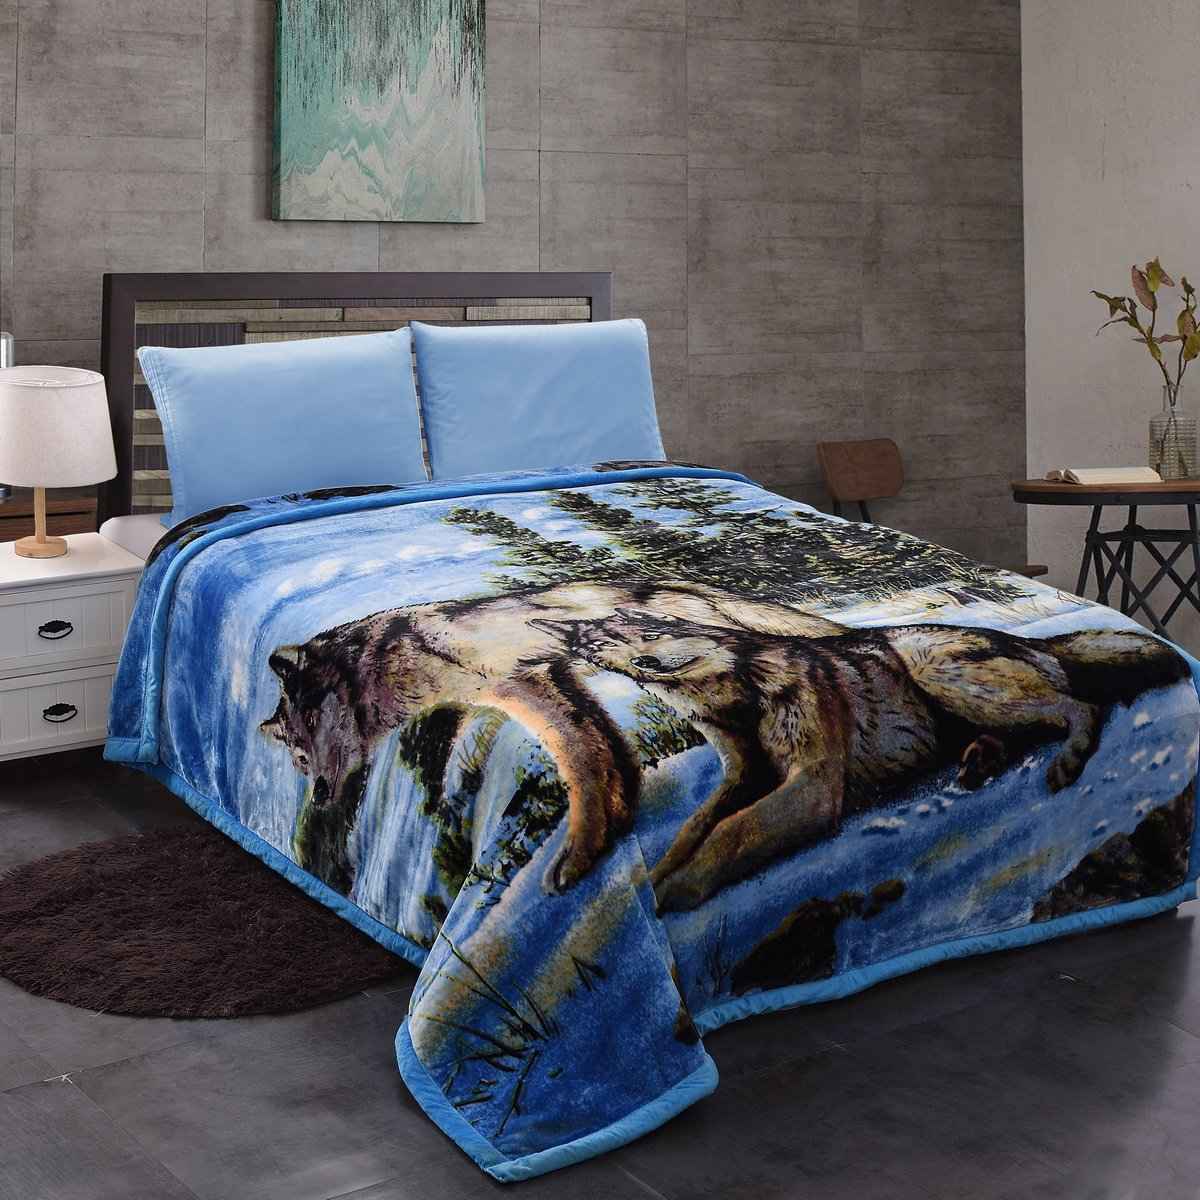 Jml Plush Crystal Velvet Heavy Blanket - Made of 750 GSM Microfiber in 95''x85'' - Faux, Mink and Embossing Dual Layers - Animal Printed in King Size, 9LB Weight by Jml (Image #2)